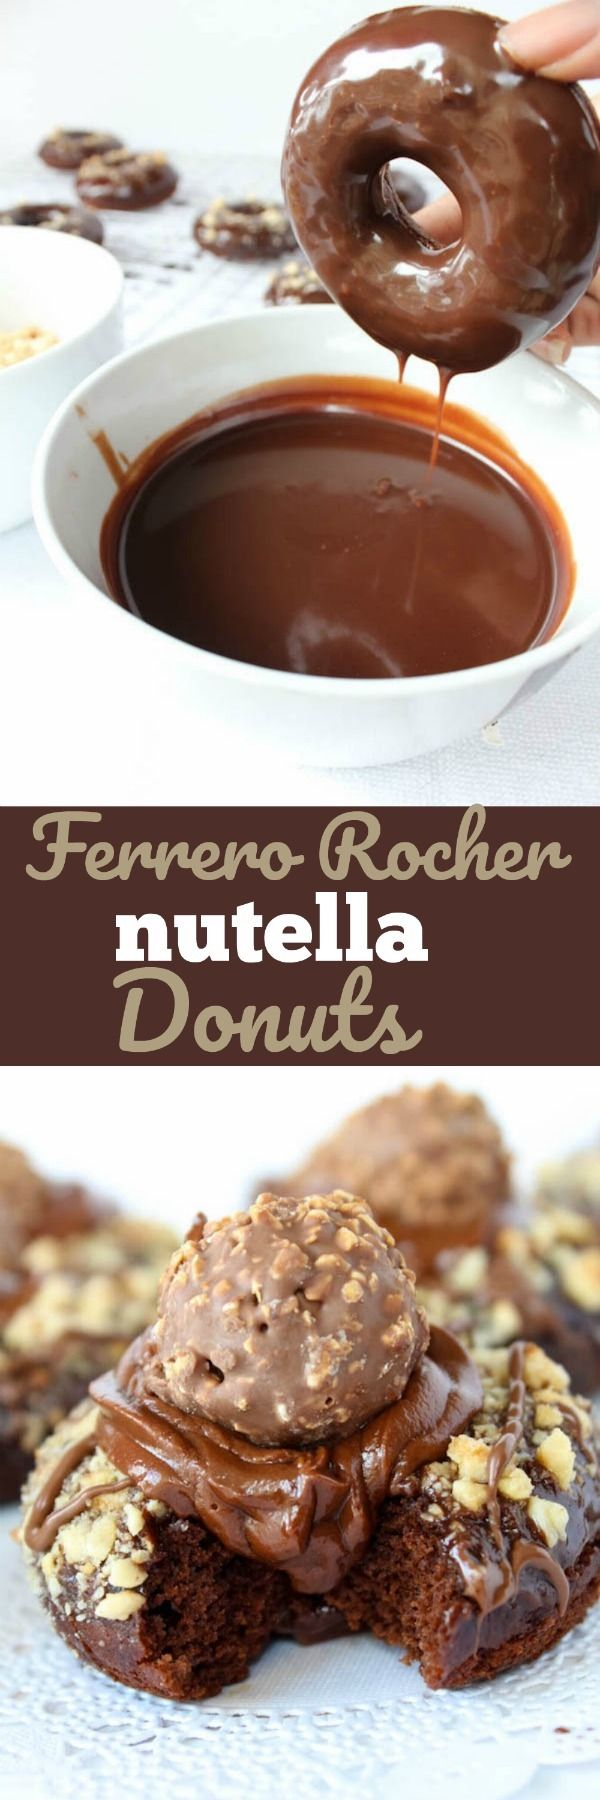 Ferrero Rocher Nutella Donuts! Find the recipe on queensleeappetit.com